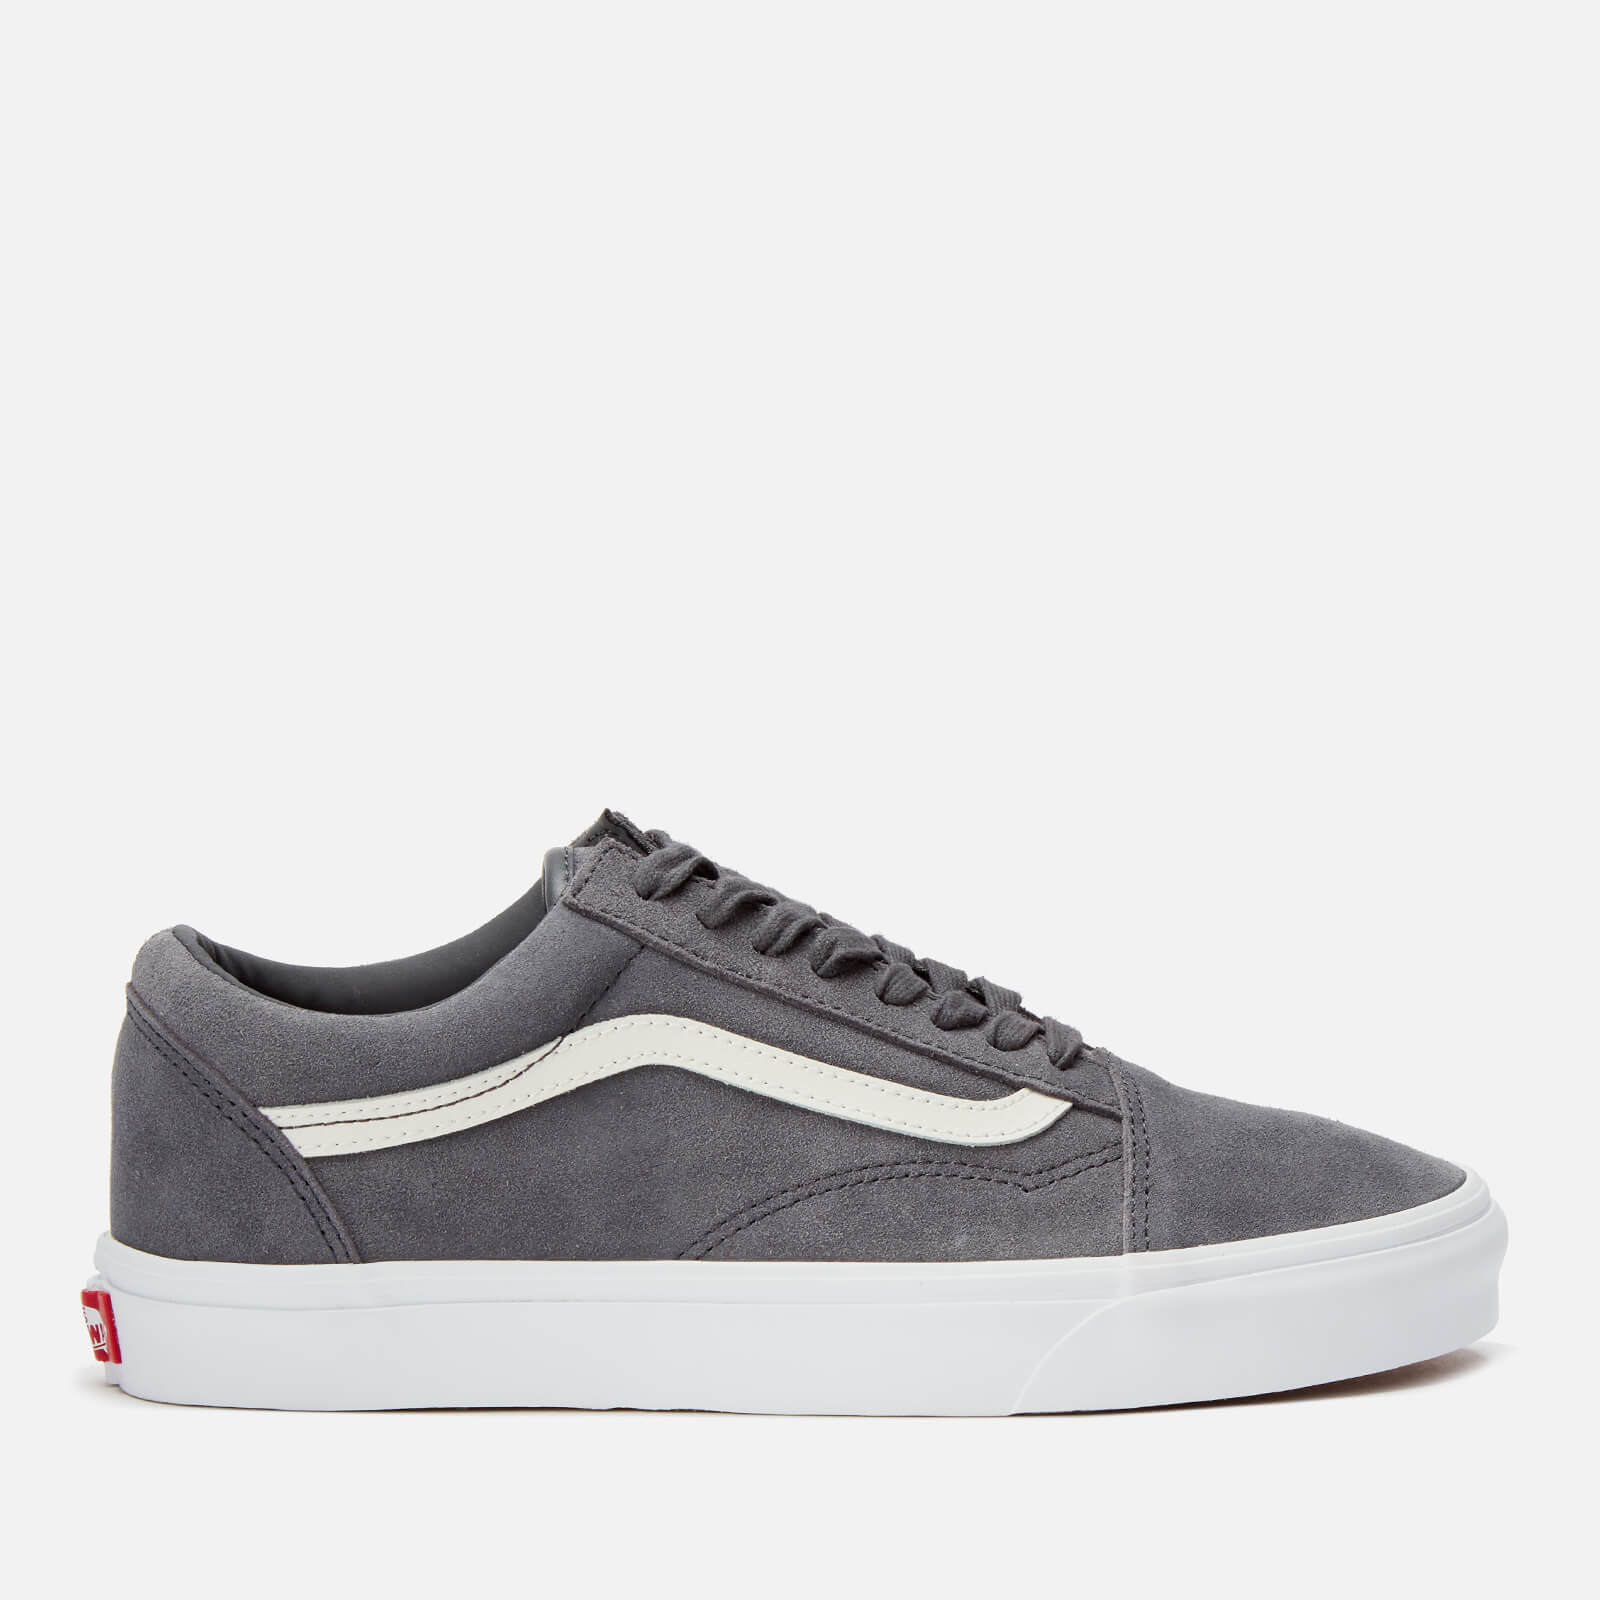 Vans Men's Soft Suede Old Skool Trainers EbonyTrue White